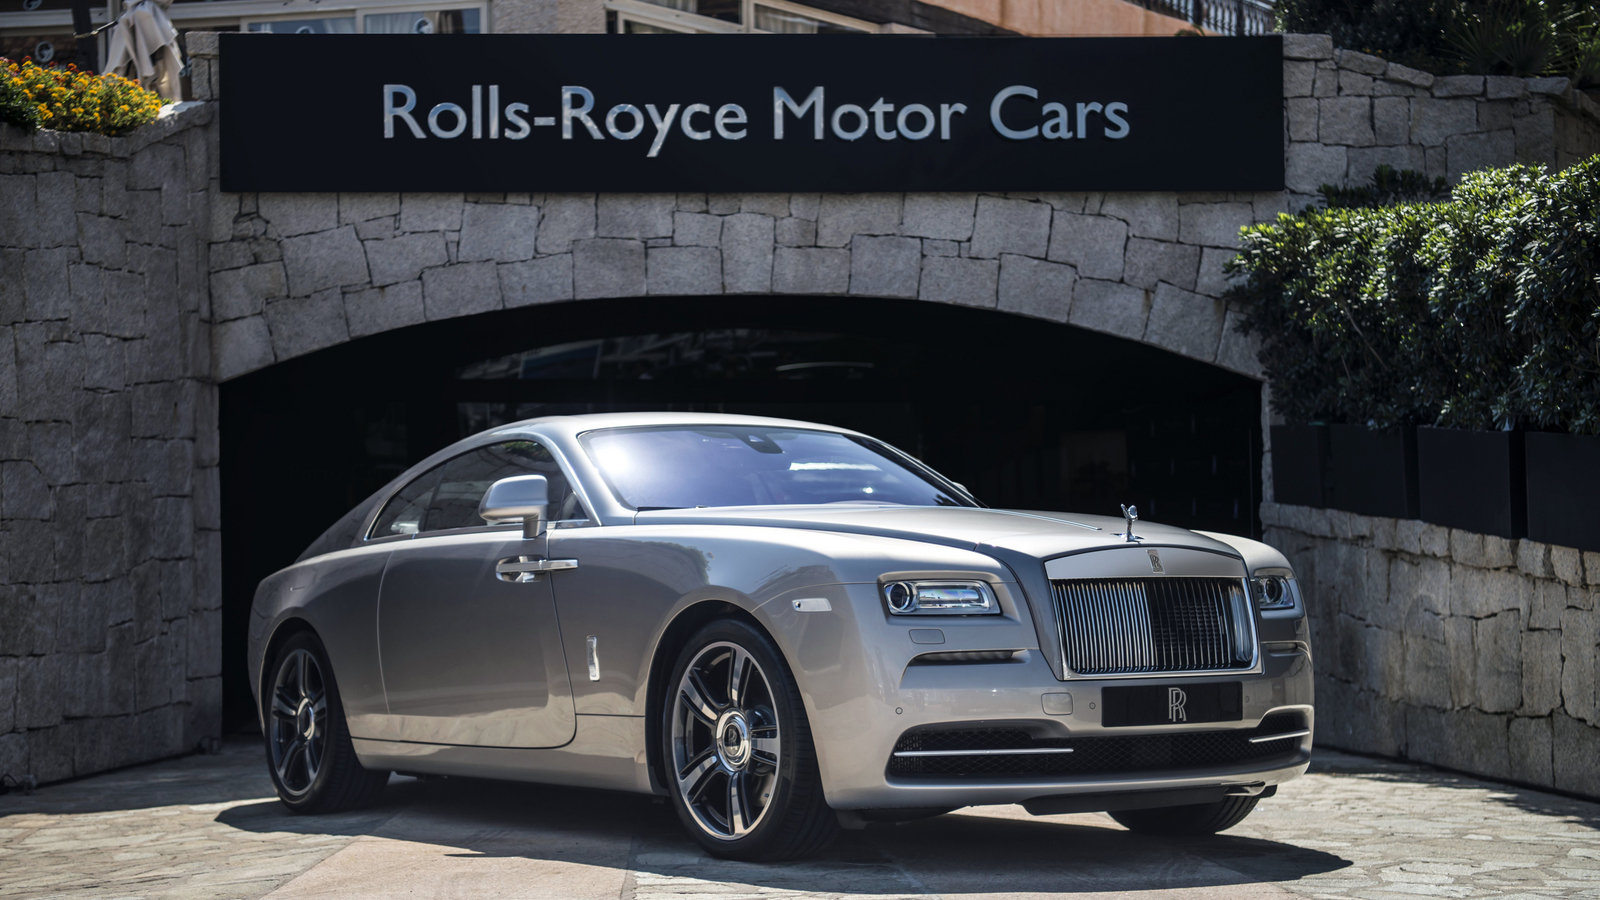 Ferrari Of New England >> 2016 Rolls-Royce Porto Cervo Wraith Pictures, Photos ...